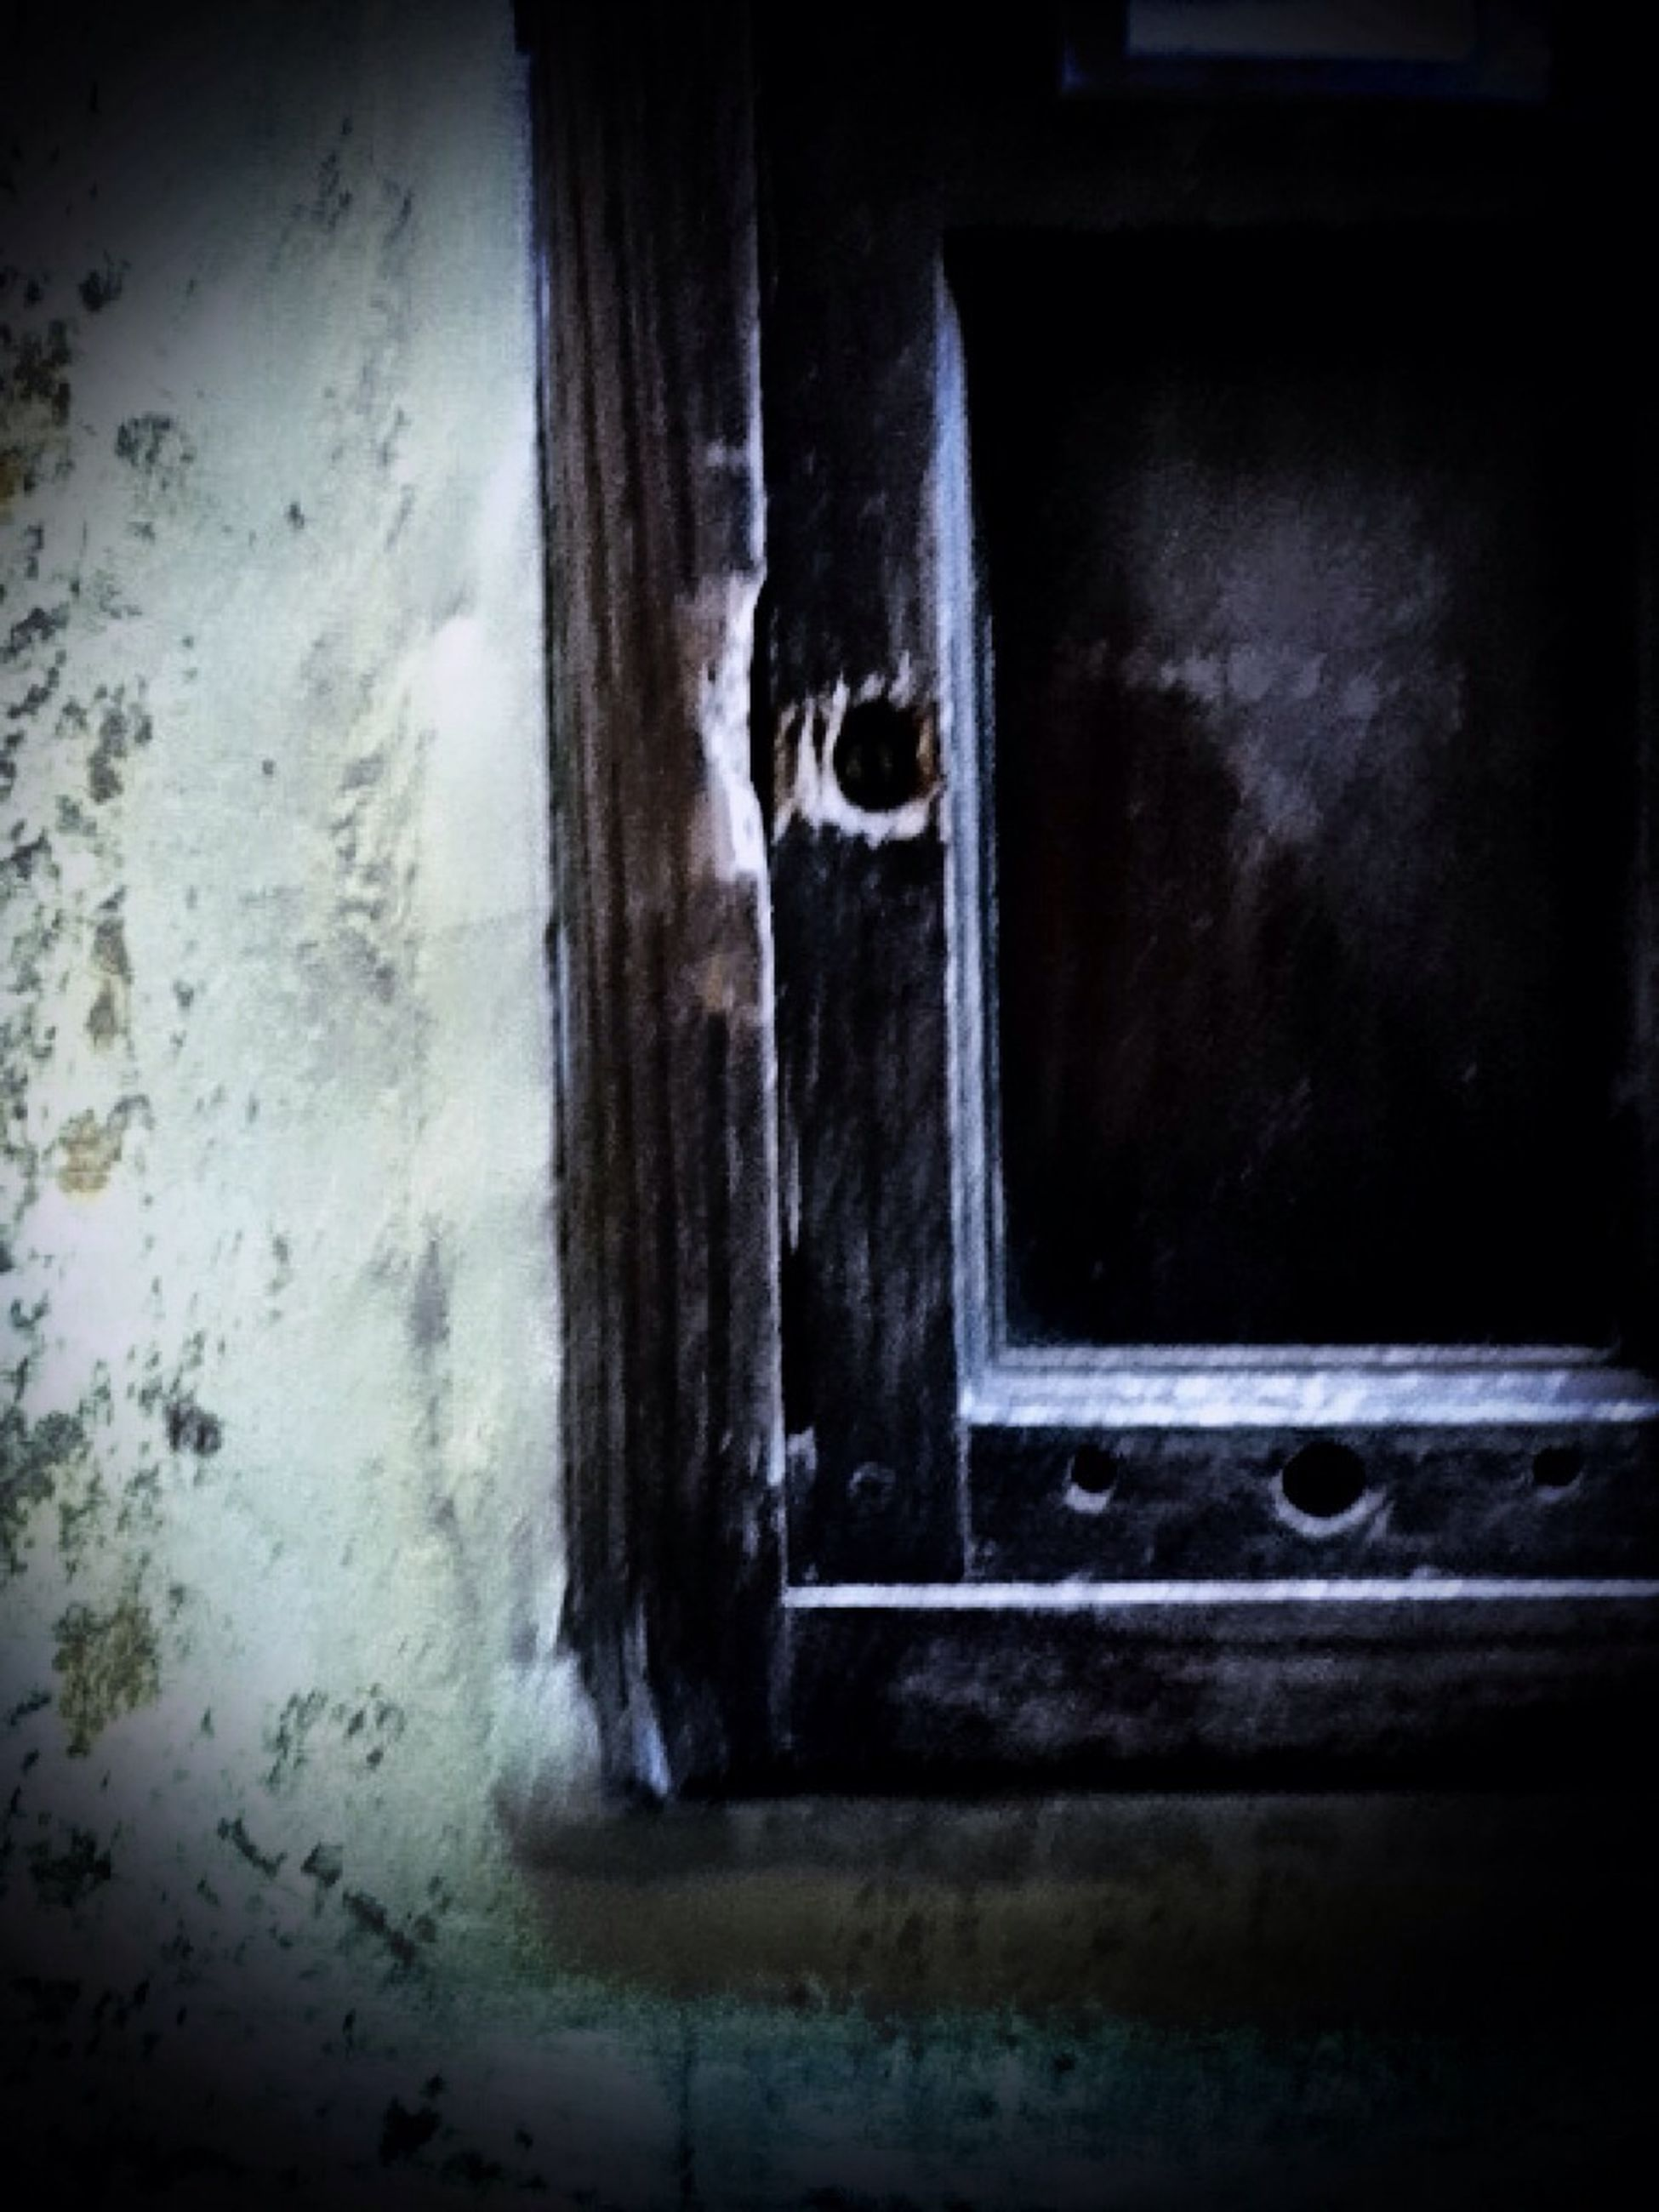 indoors, window, door, built structure, architecture, house, old, abandoned, wall - building feature, closed, doorway, weathered, wall, damaged, obsolete, wood - material, close-up, no people, deterioration, entrance